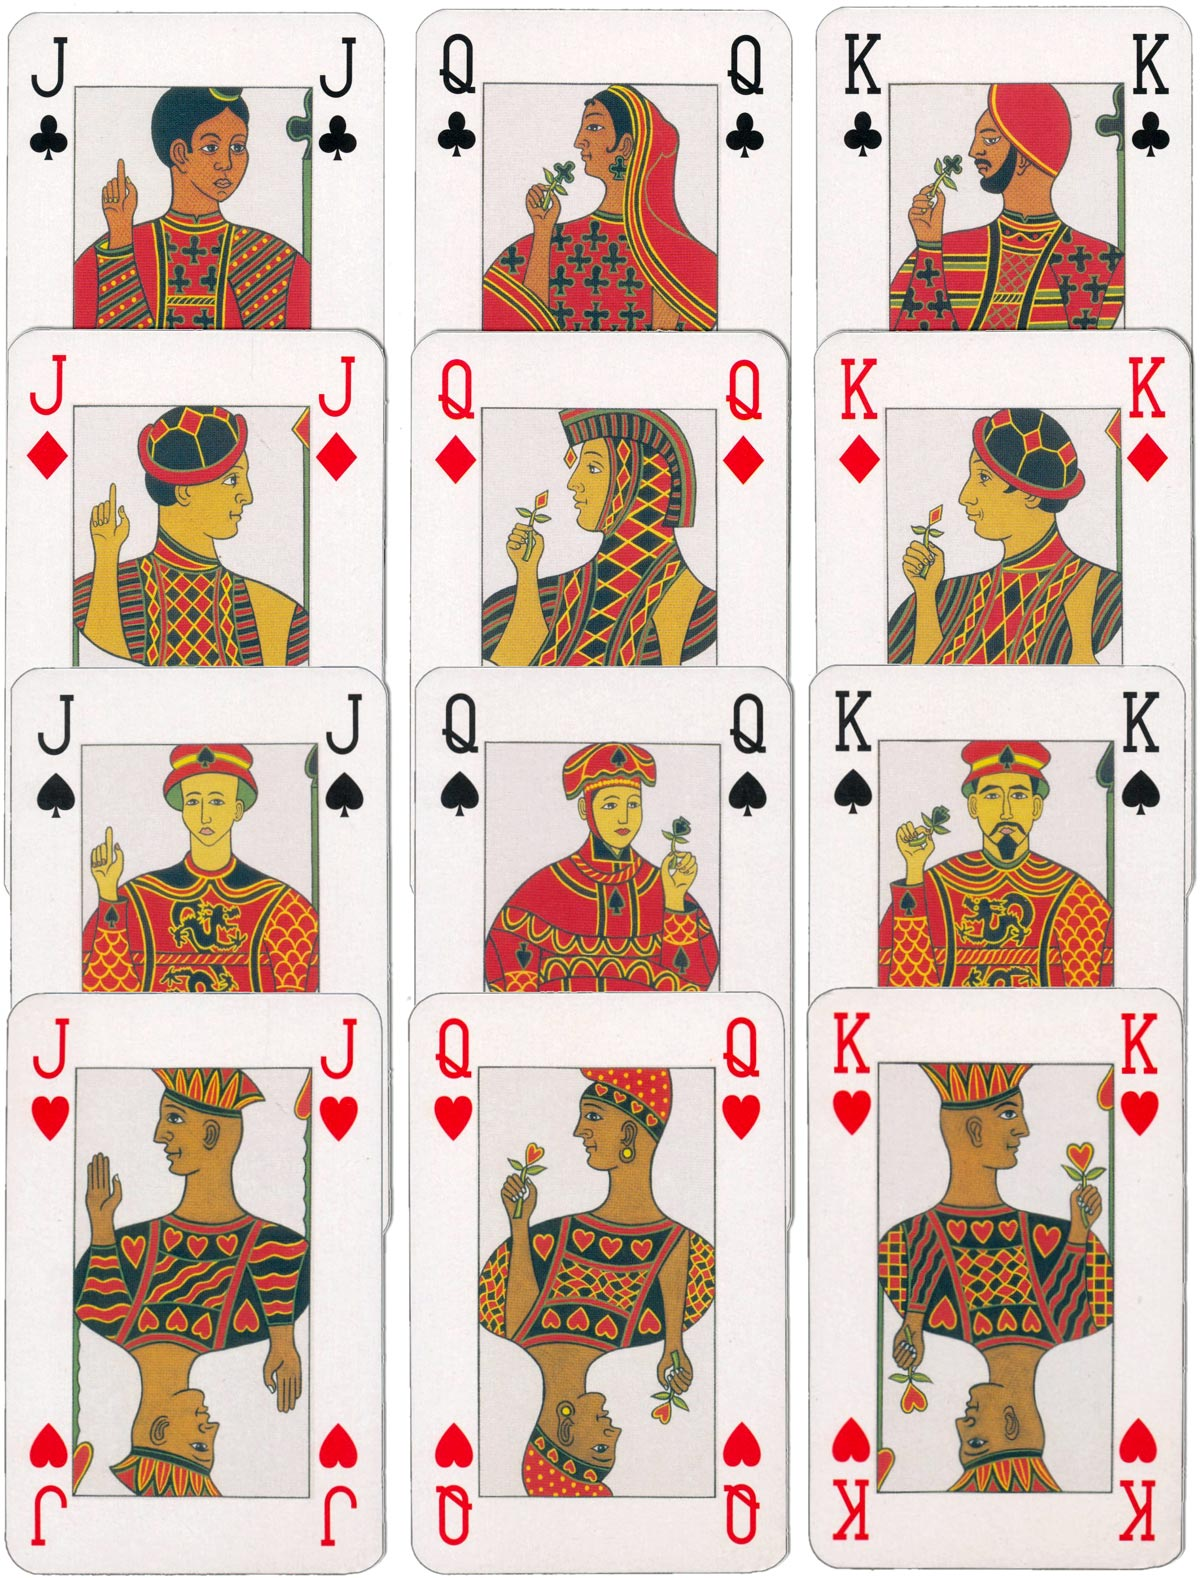 """Fair Play"" cross cultural playing cards illustrated by Canadian artist Stephen B. MacInnes"